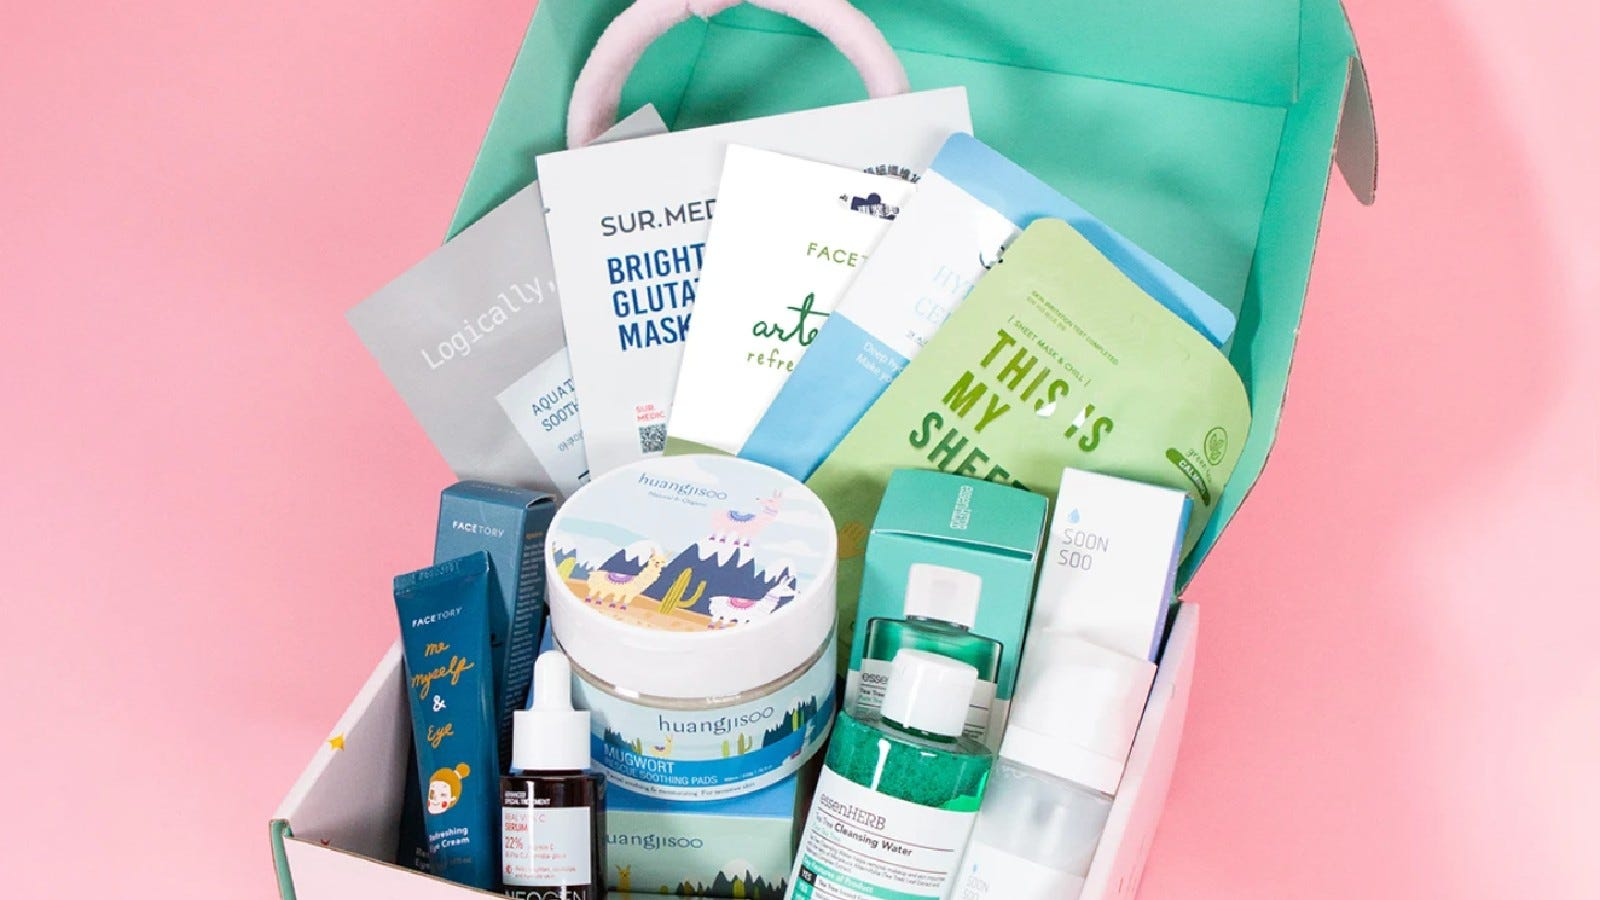 A Facestory gift box filled with different skincare items.